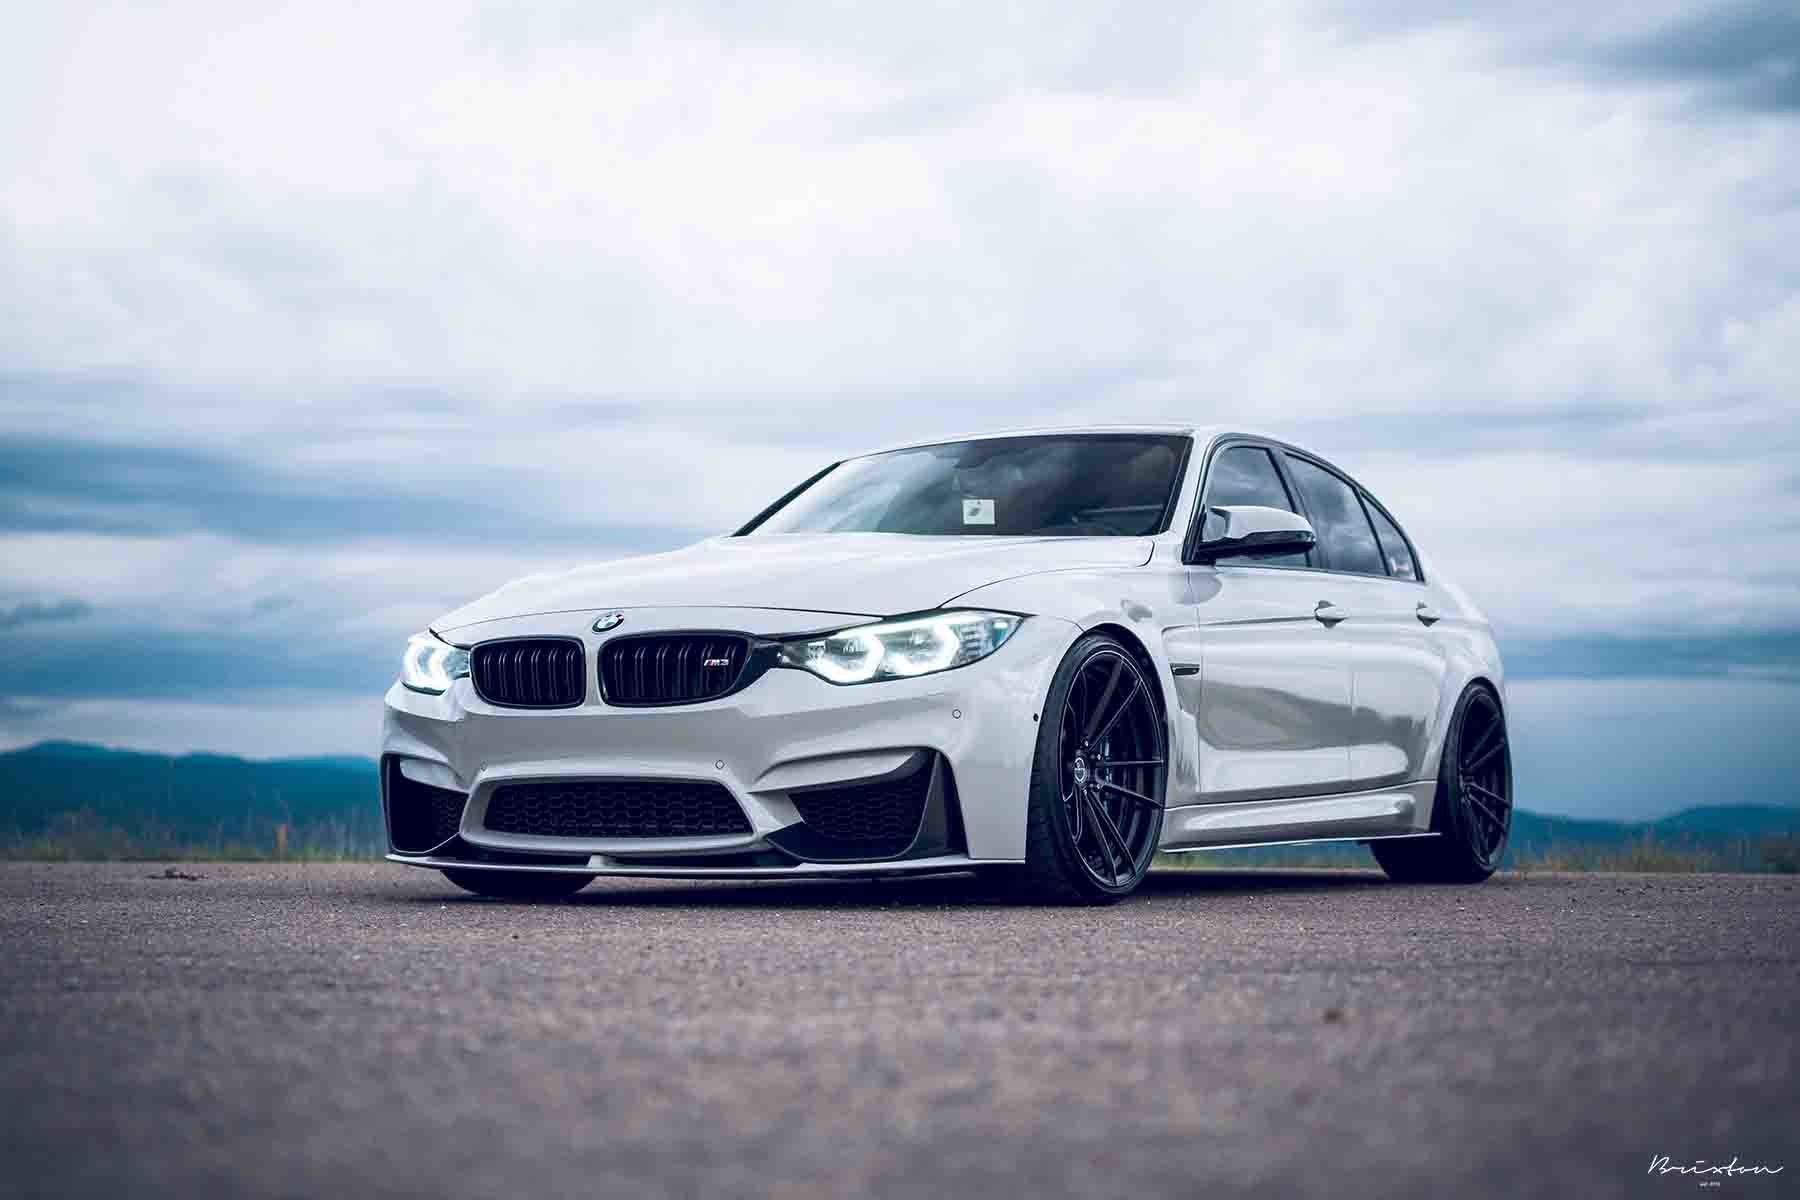 images-products-1-2158-232974446-bmw-f80-m3-brixton-forged-m51.jpg